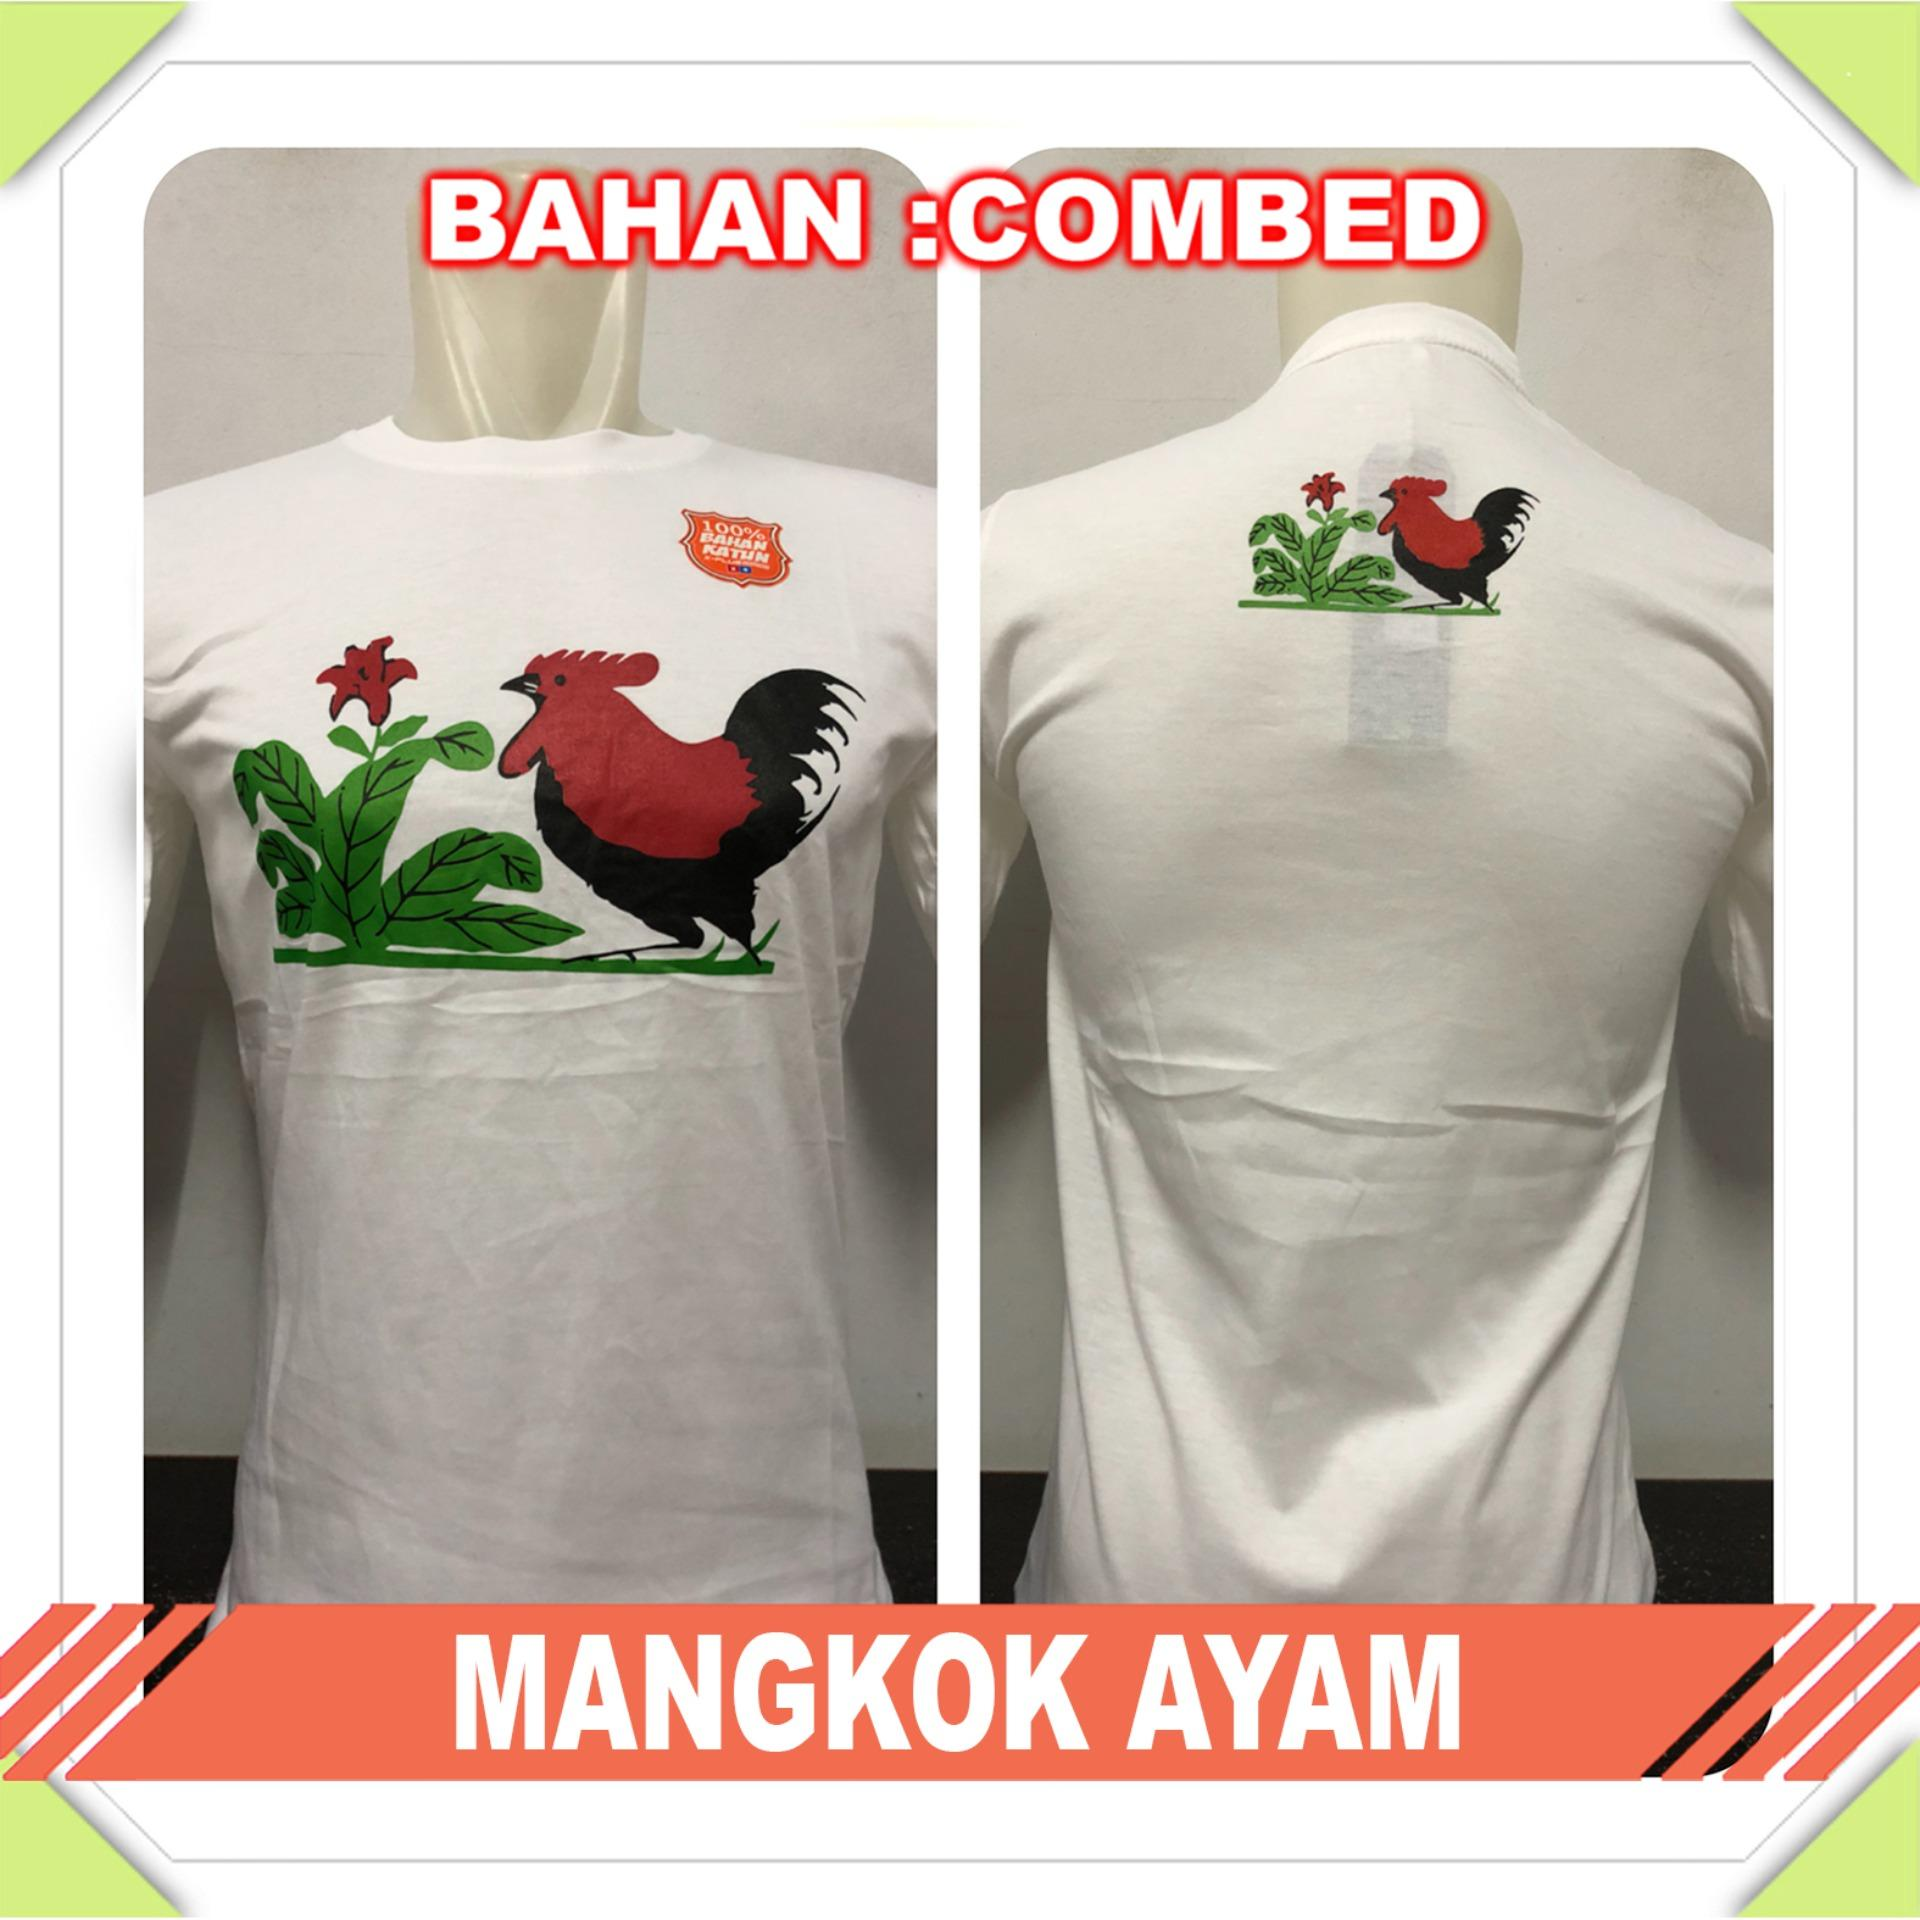 Buy Sell Cheapest Ayam Best Quality Product Deals Indonesian Store Sepatu Anti Bubul Bang At Gracestore Kaos T Shirt Distro Premium Mangkok Putih